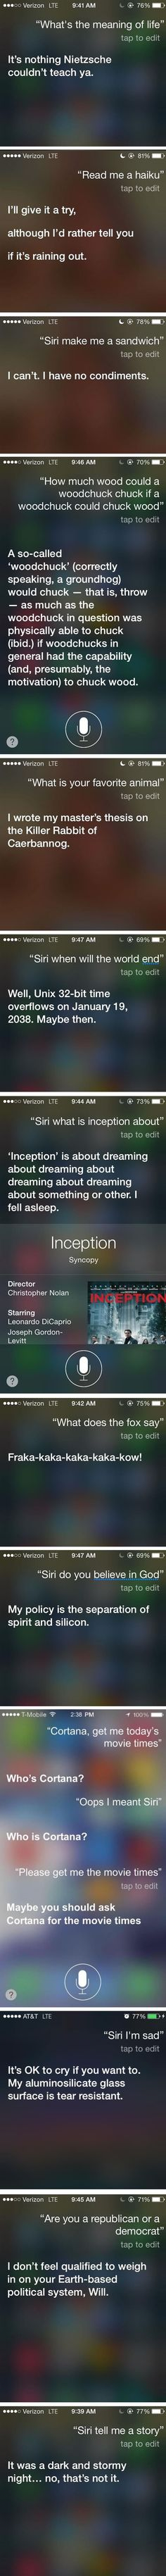 Hilarious answers from Siri